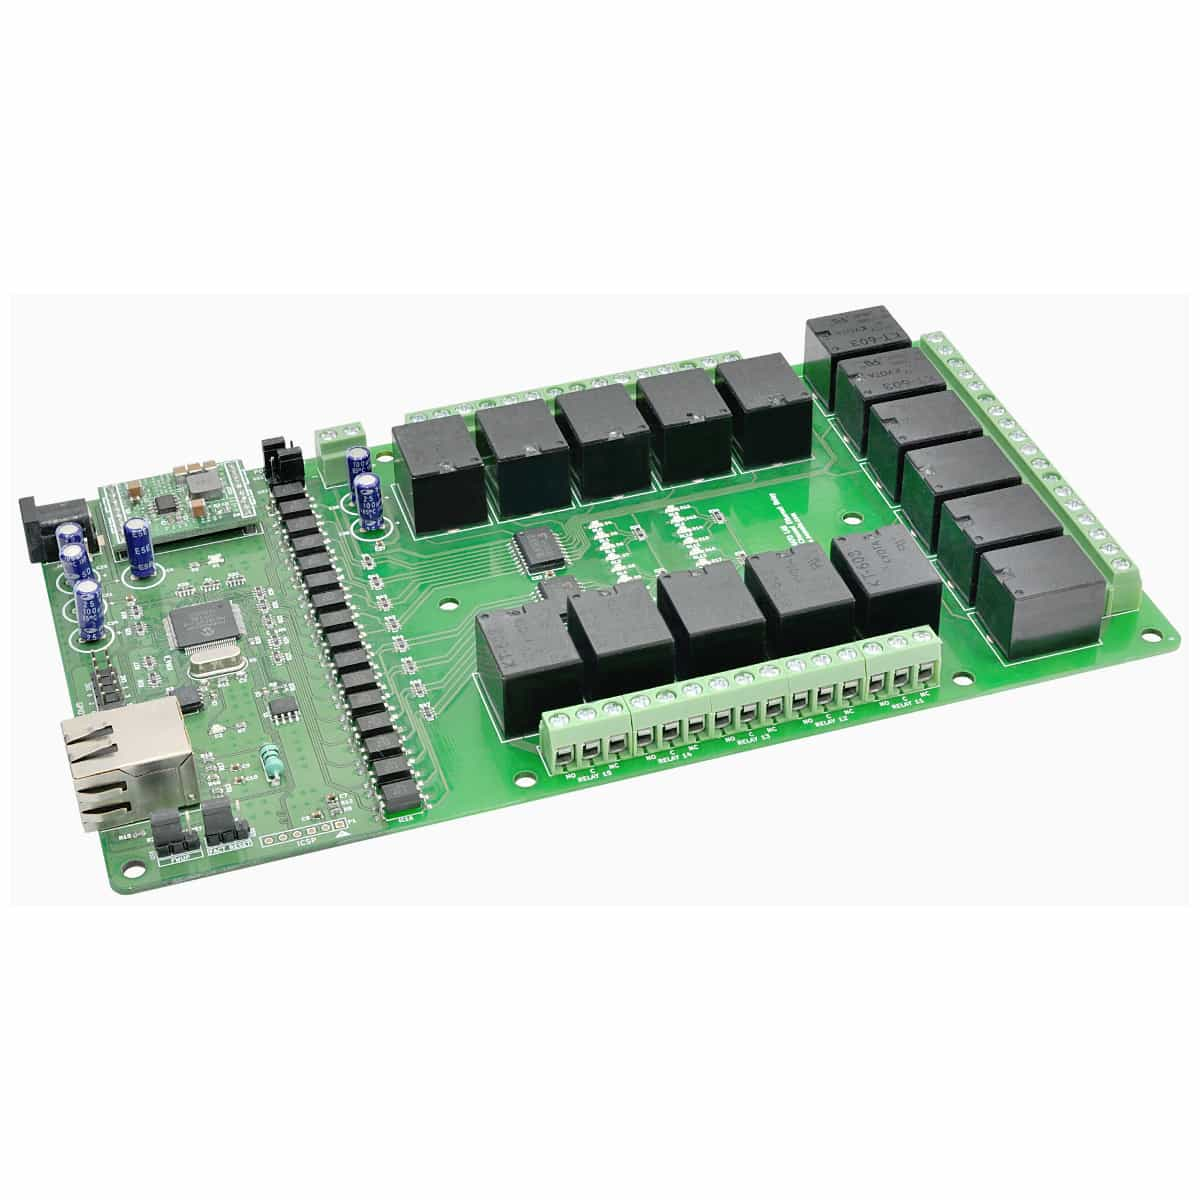 32 Channel Ethernet Relay Module With Gpio Numato Lab Switch Over 11995 Select Options 16